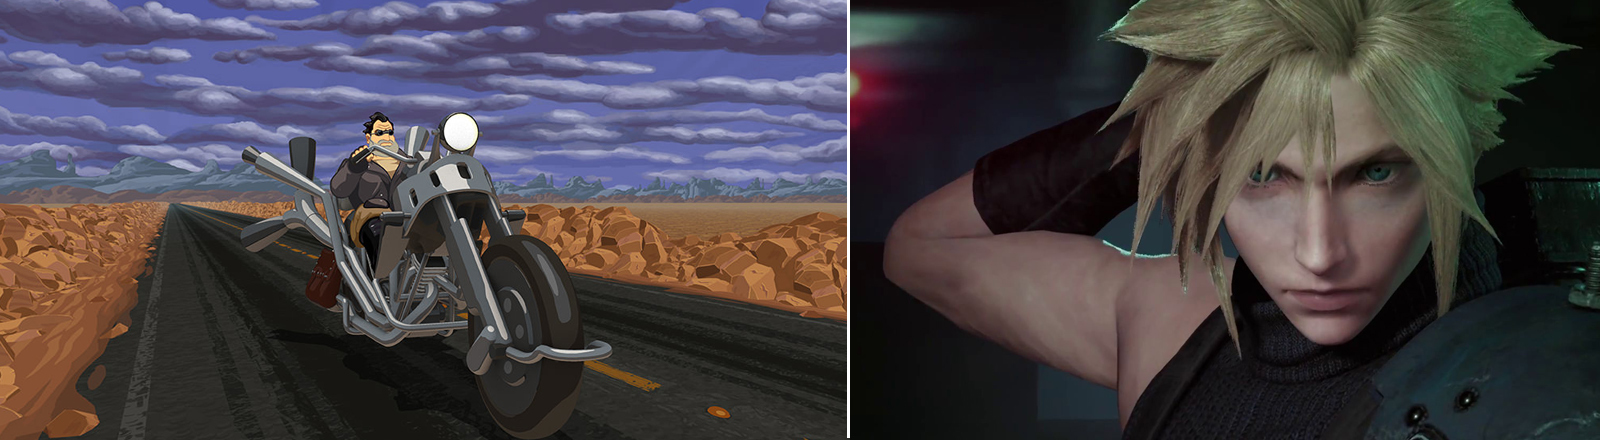 "Stills aus den Computerspiel-Remakes von ""Vollgas - Full Throttle"" und ""Final Fantasy 7"""